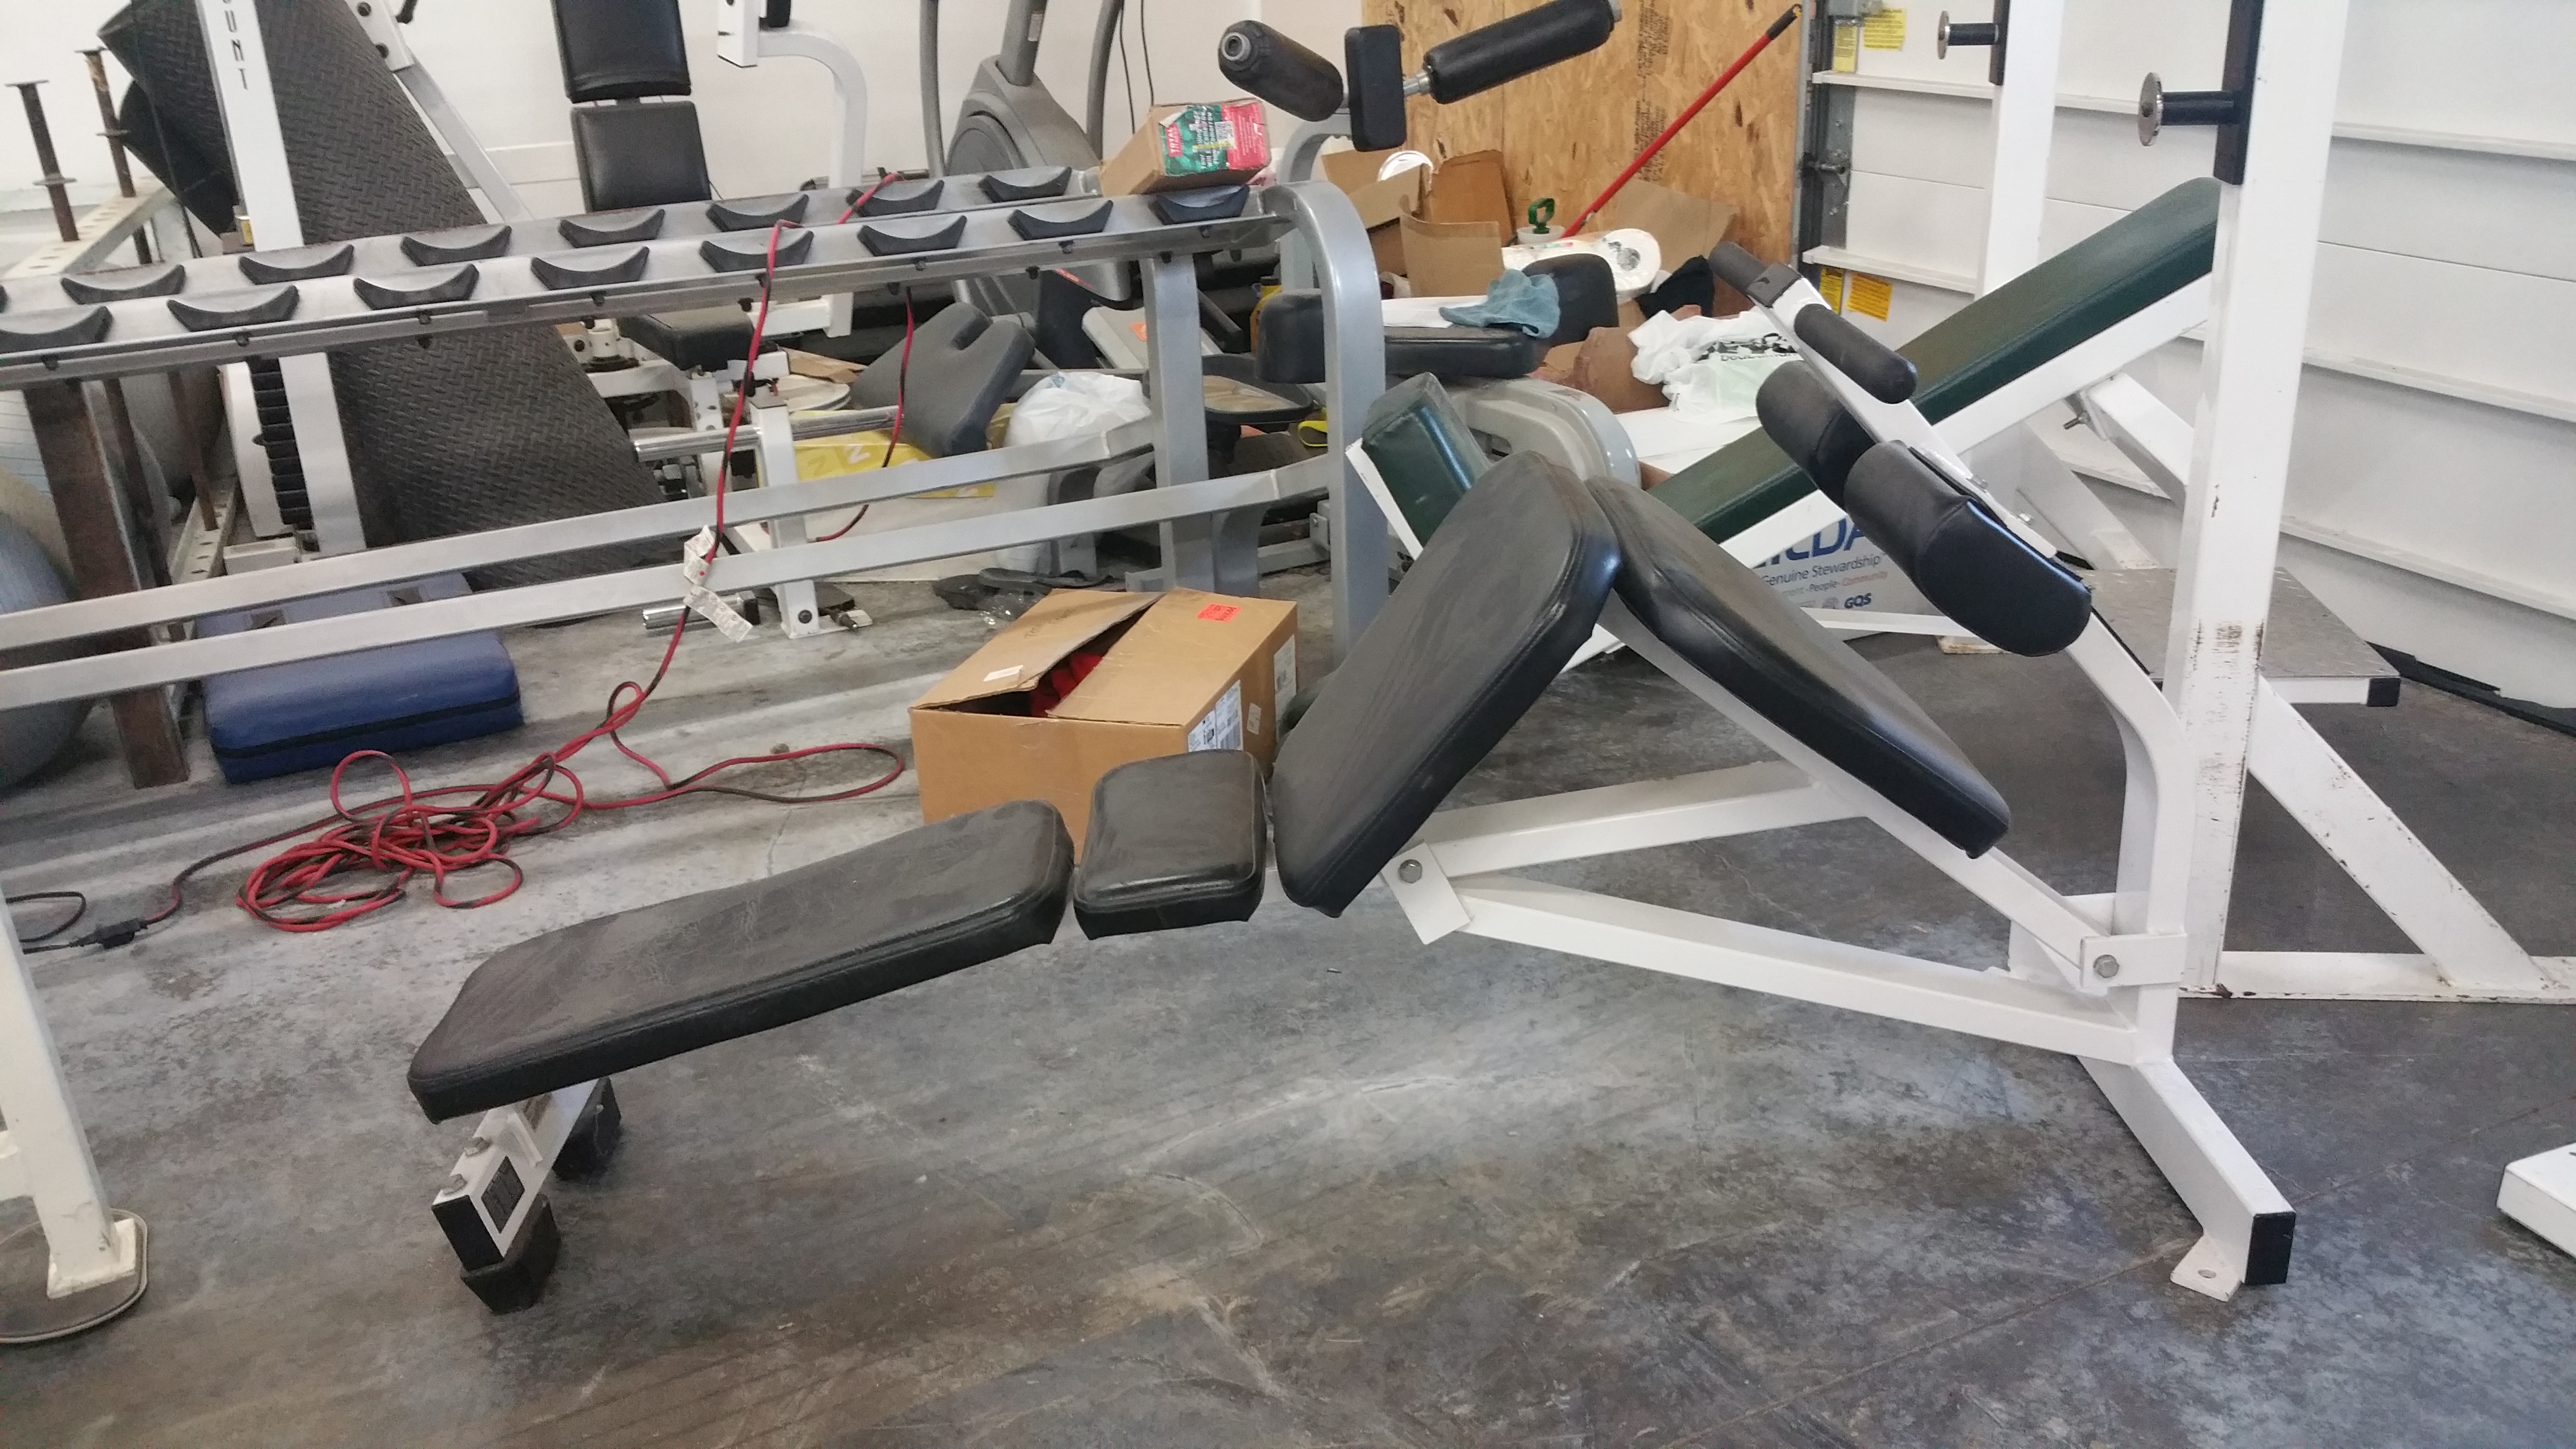 Midwest Used Fitness Equipment Hammer Strength Decline Ab Bench